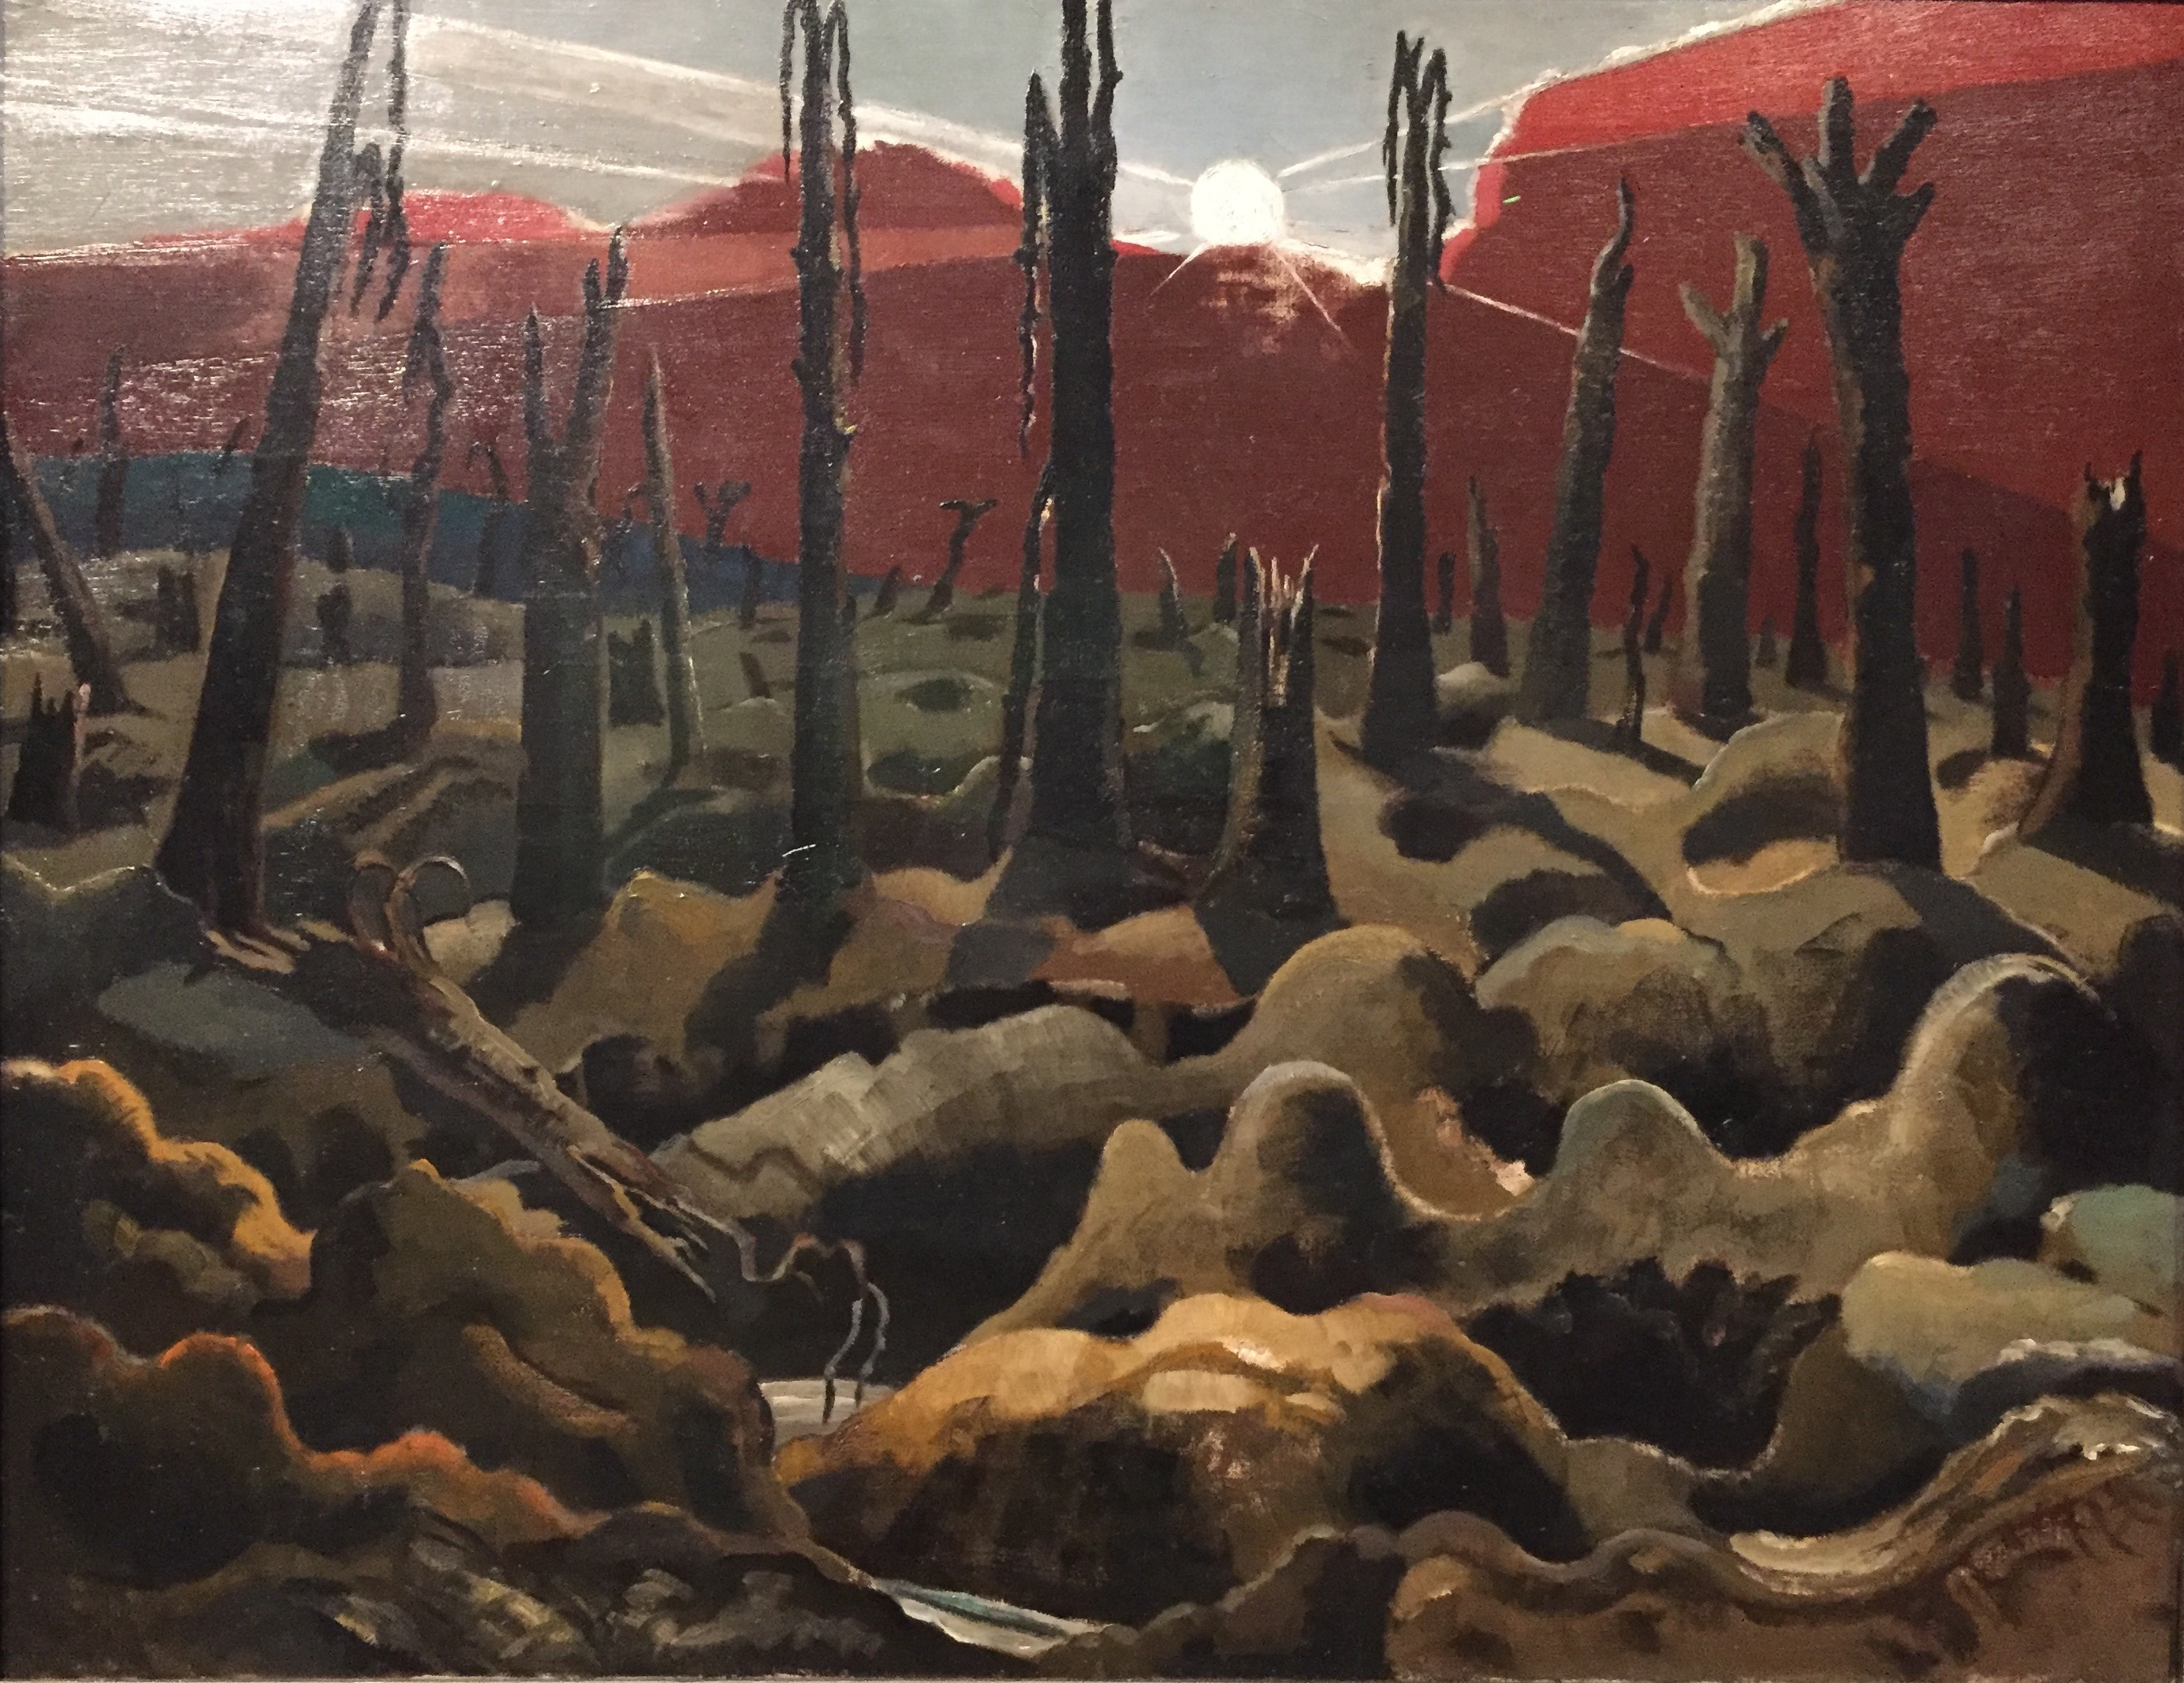 Paul Nash,Tate Britain